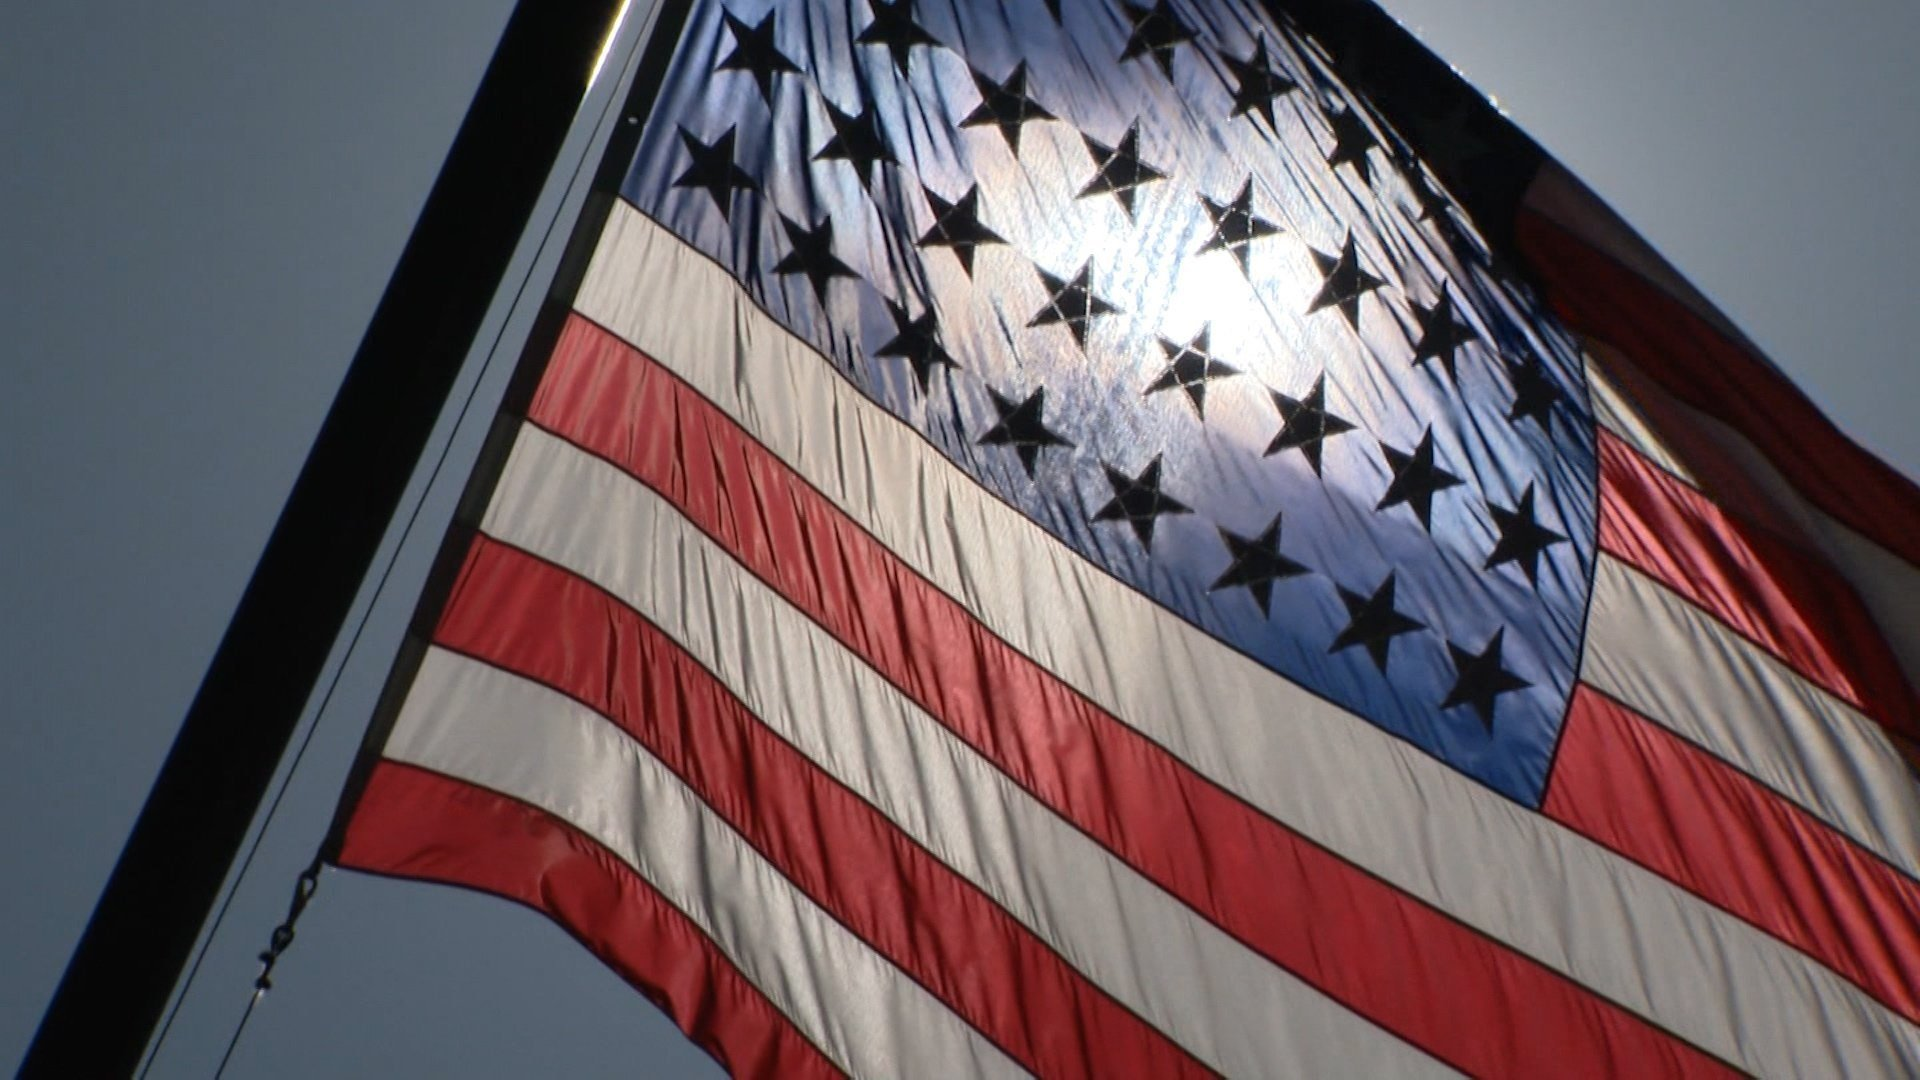 Thursday is Flag Day and, given the amount of attention the flag and customs relating to it have received in recent months, it's a good time for a look at the US Flag Code, which provides an extensive list of rules for treatment of the US flag.